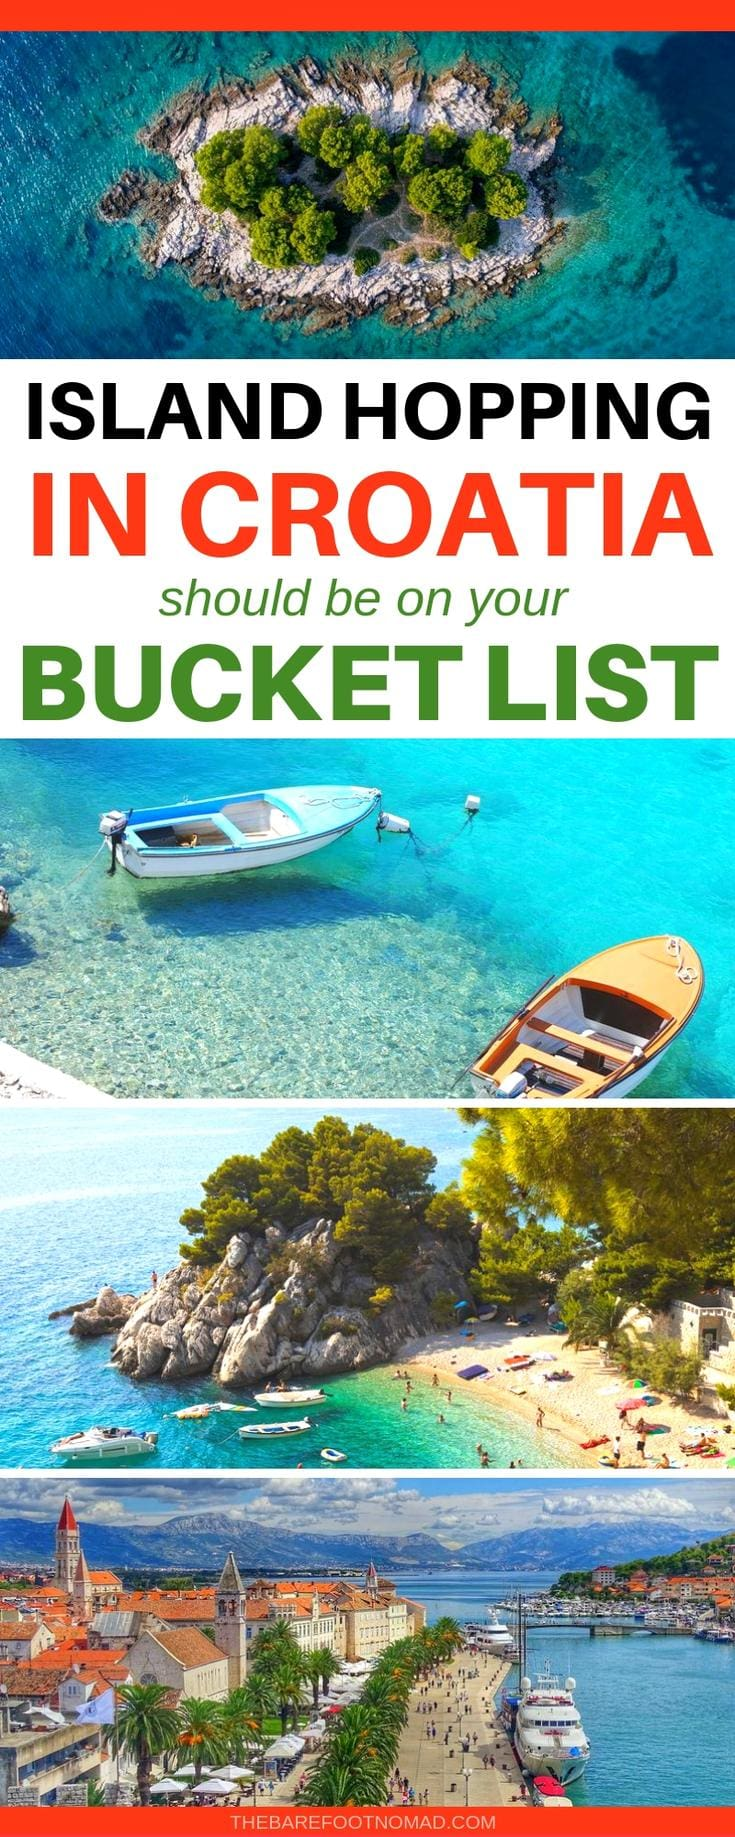 Island hopping in Croatia should be on your bucket list